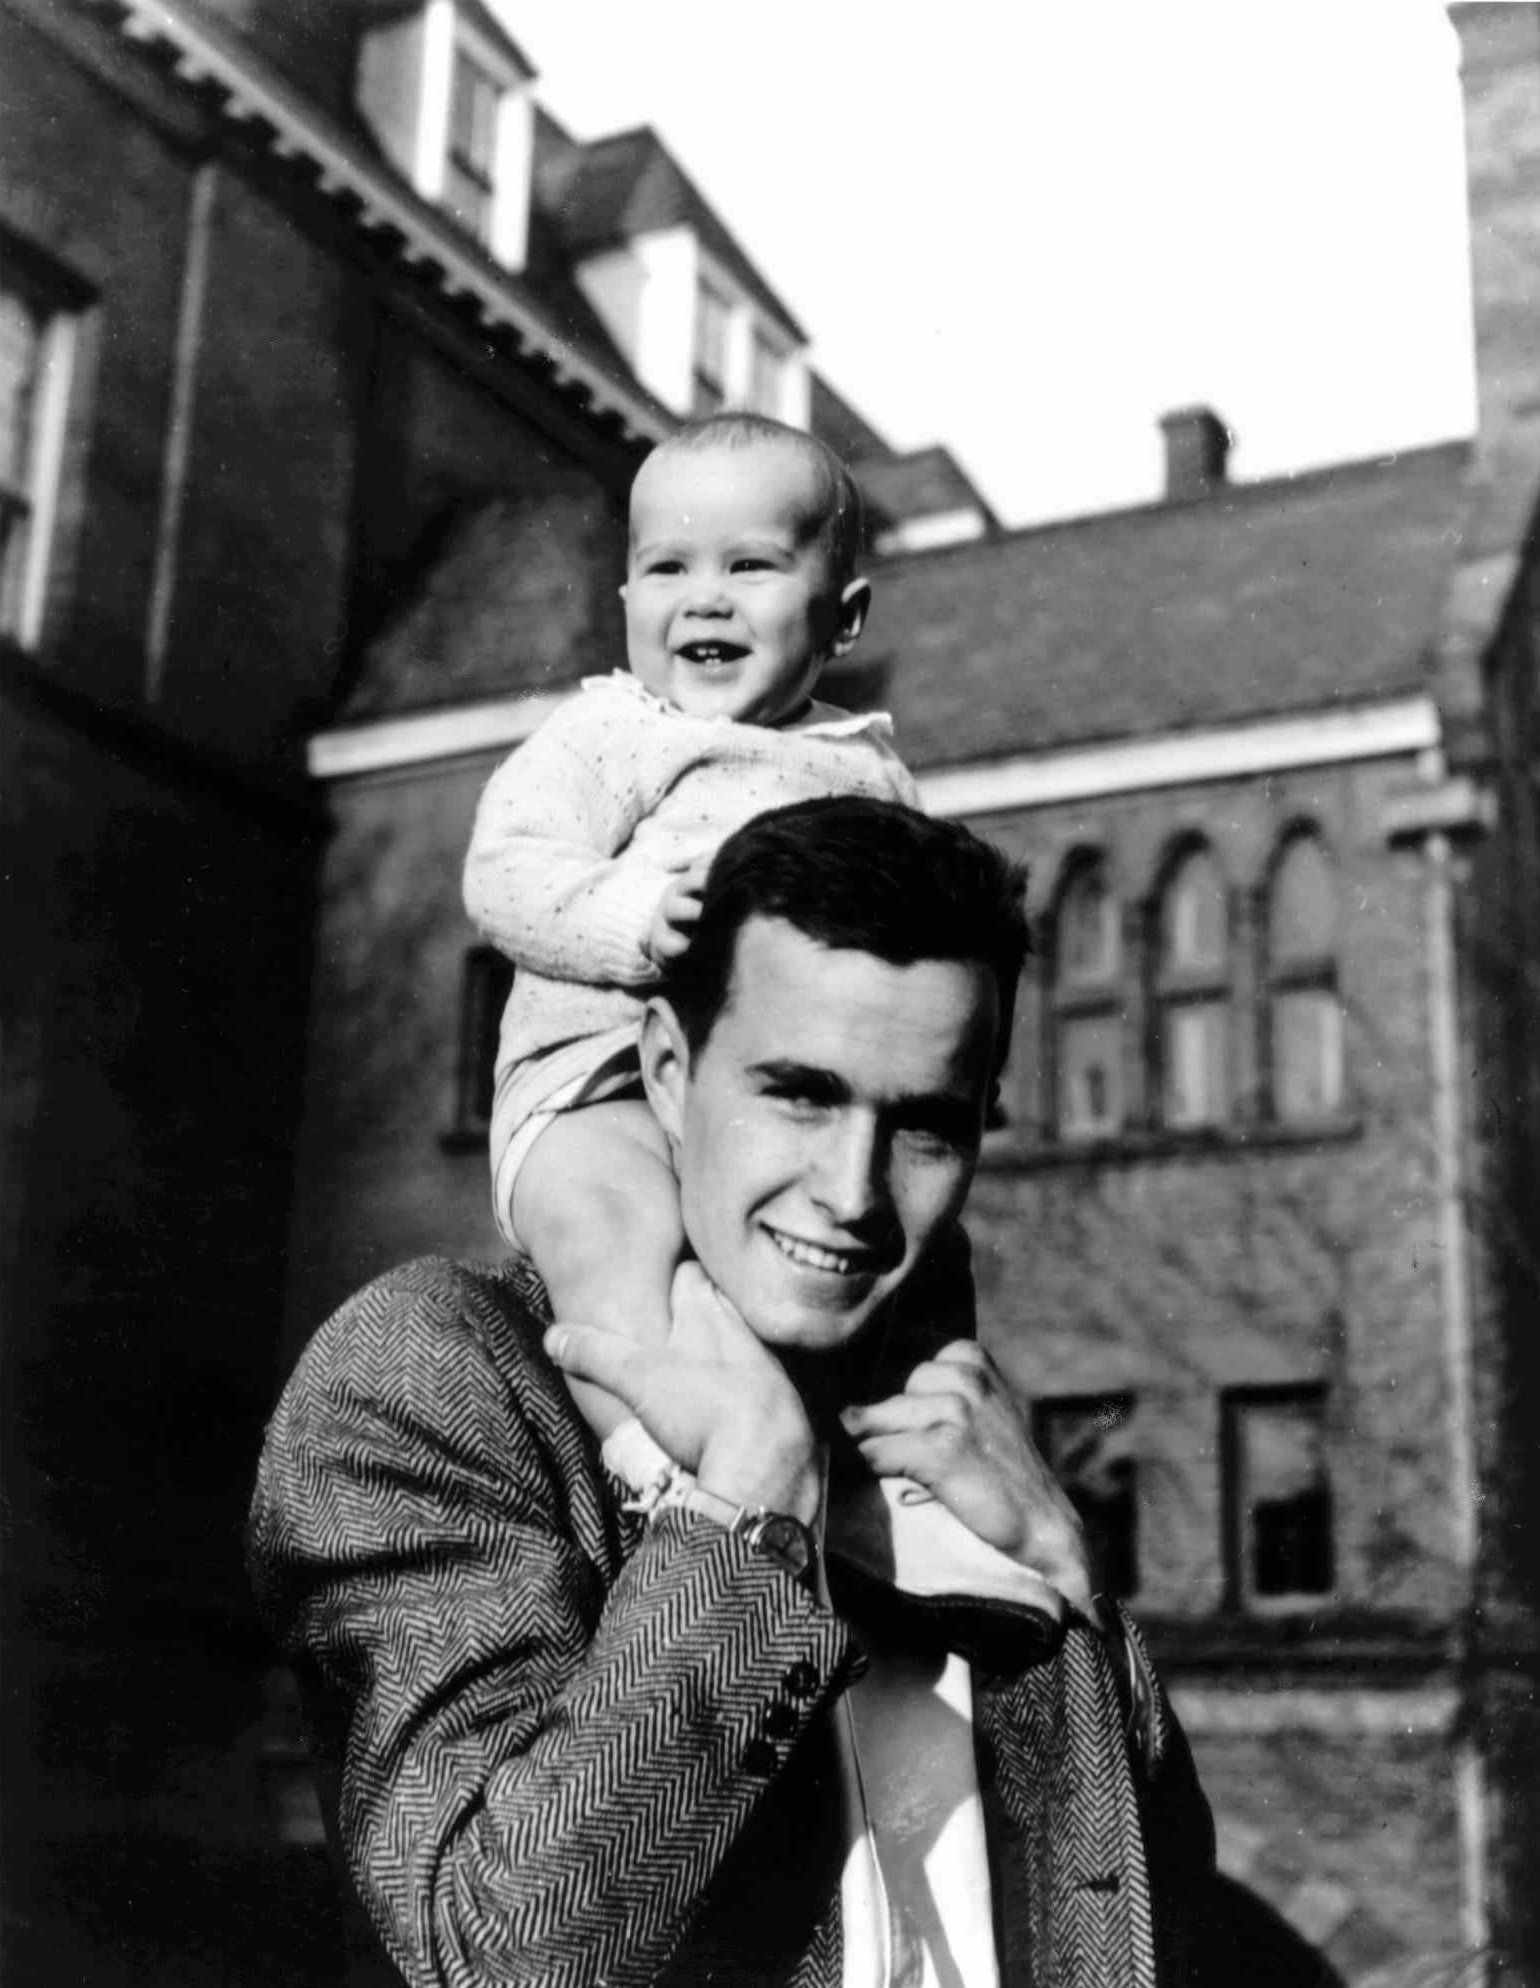 1947: Two future presidents: George H.W. Bush and son George W. Bush, when the younger Bush — born in New Haven, Conn. — was about 9 months old.